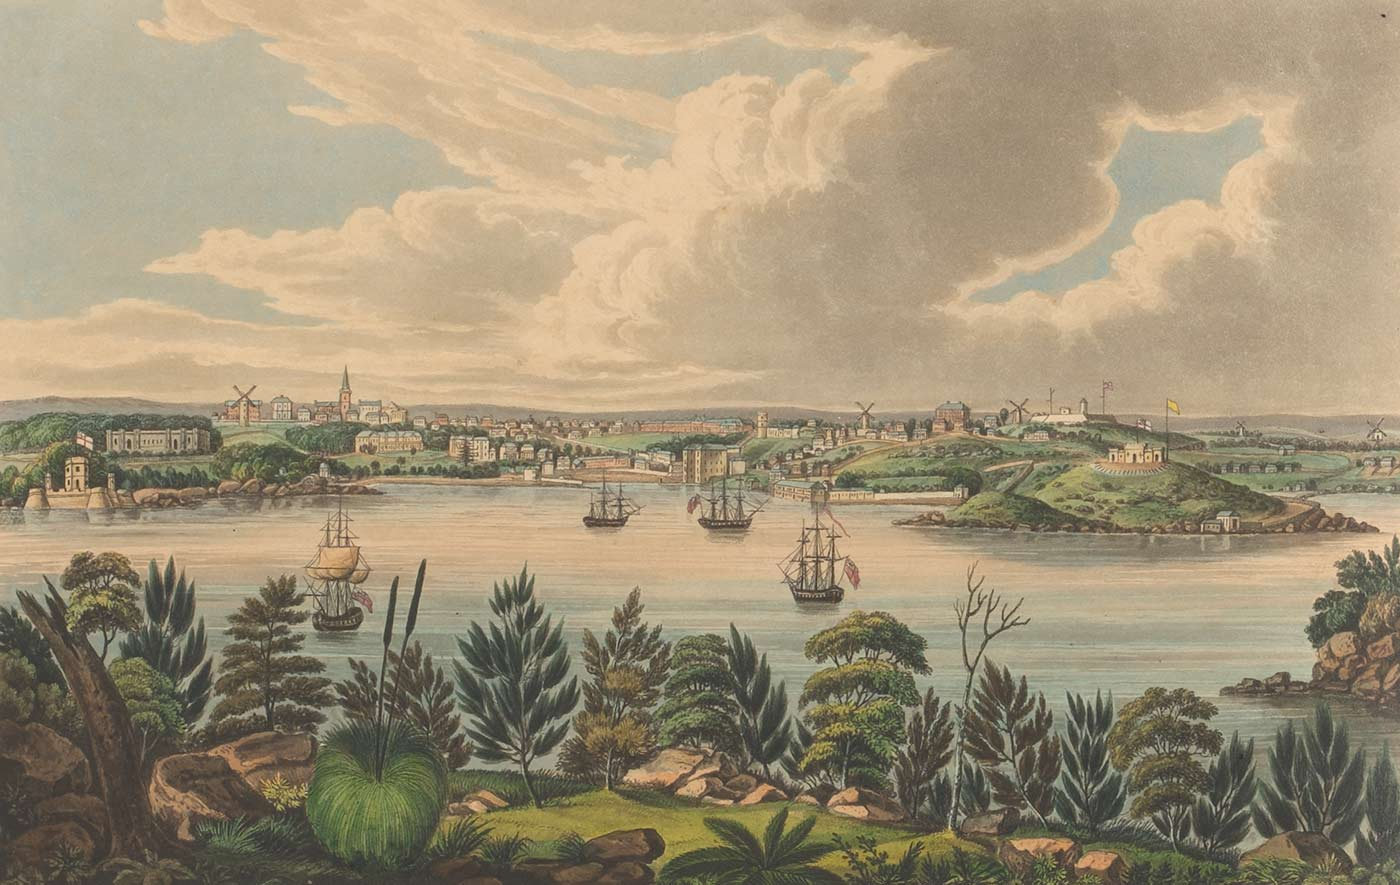 Coloured print of a view of a harbour with ships, a town in the distance, and natural landscape with various plant species in the foreground. There are low mountain ranges in the distance framed by a sky with billowing white clouds. - click to view larger image